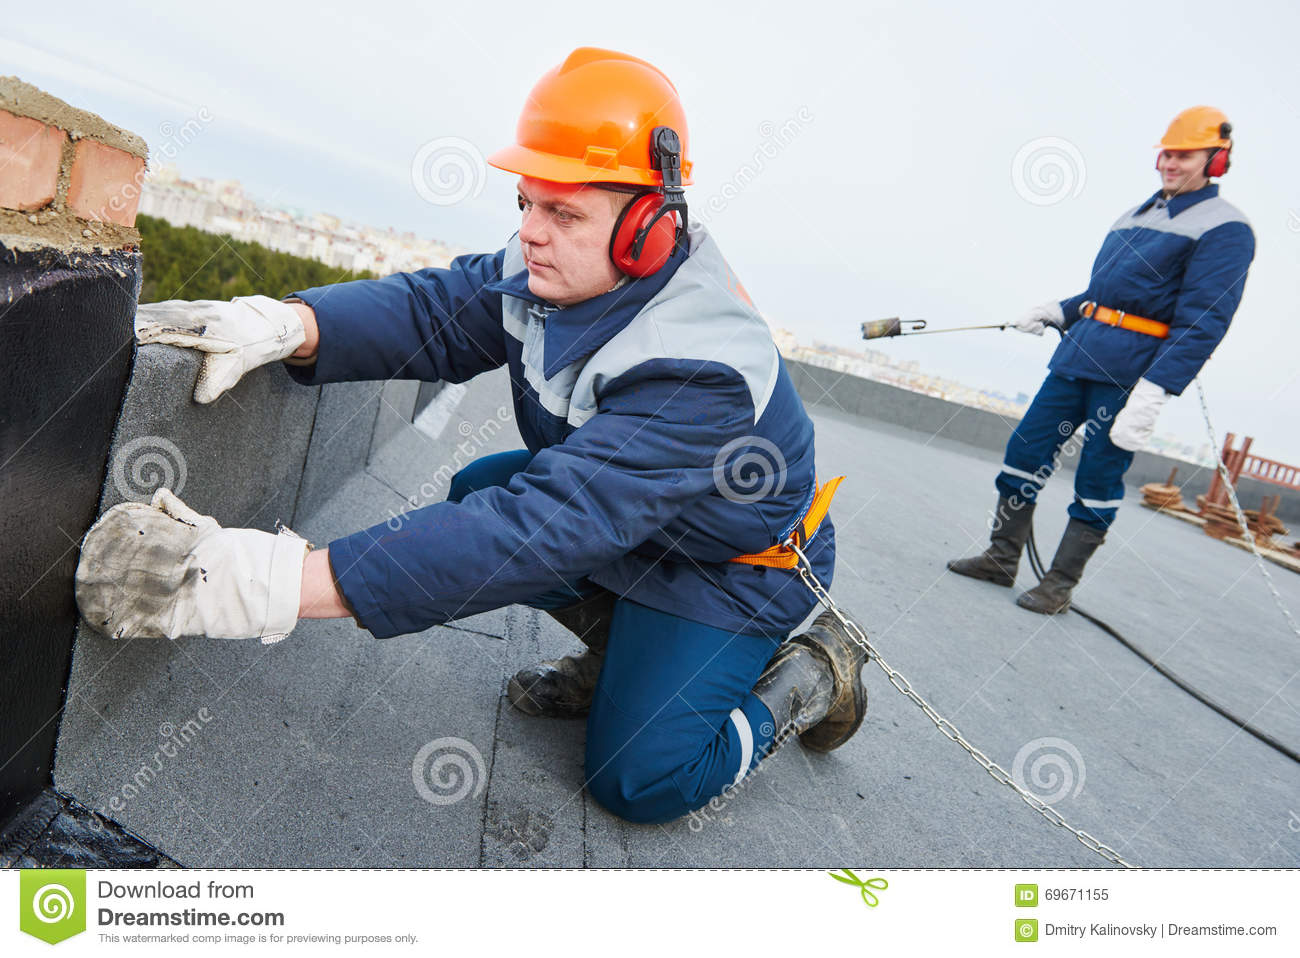 Cartoon Roofing Installation : The roofing felt asbestos royalty free stock image